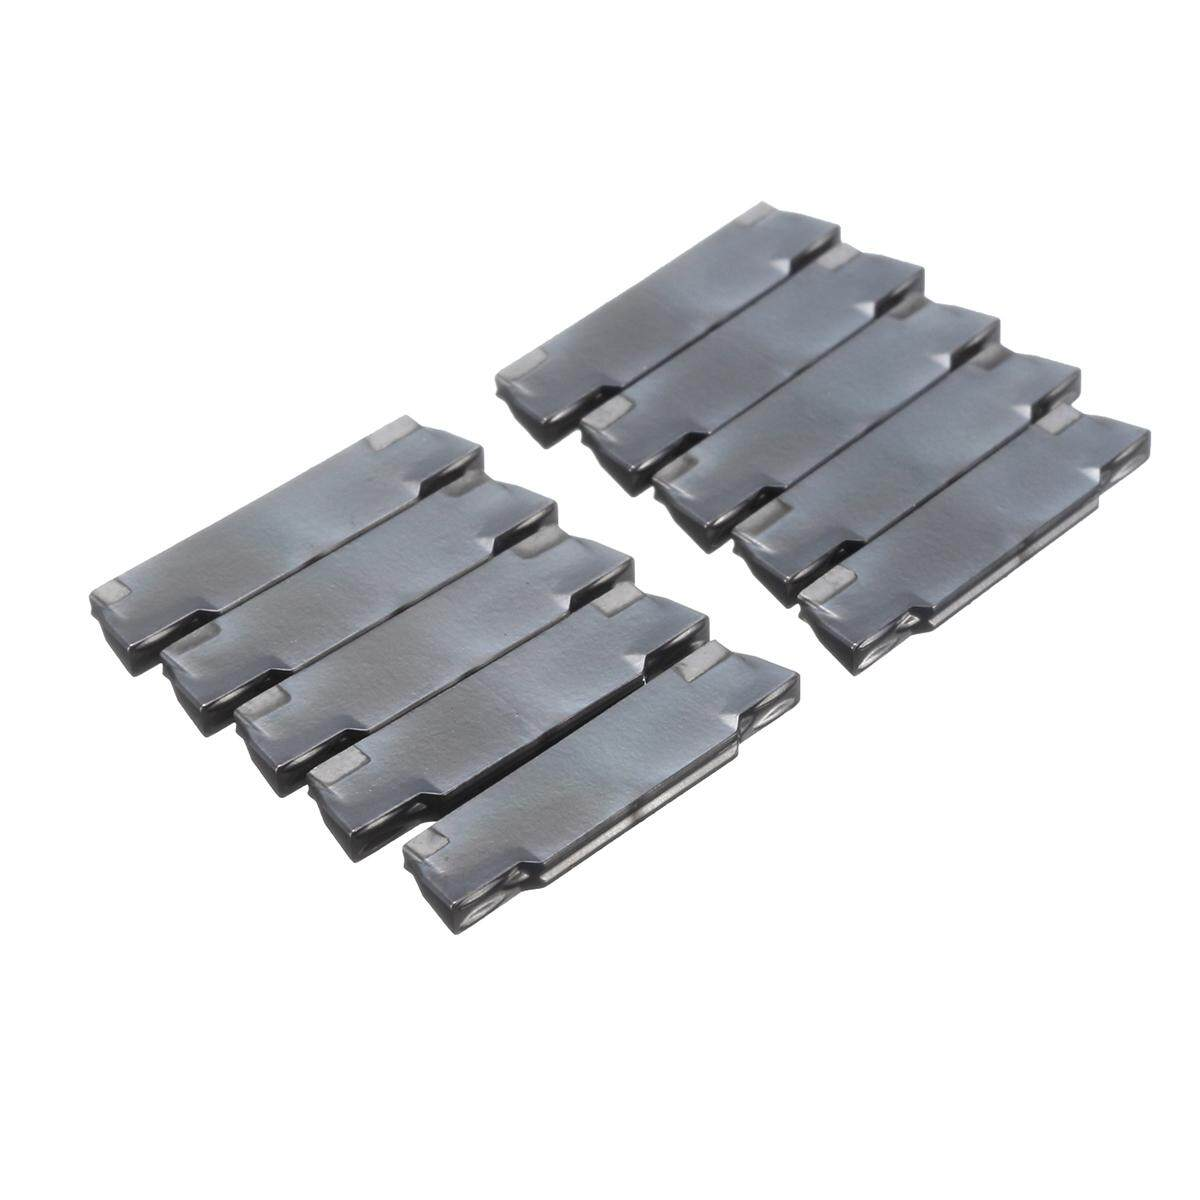 Drillpro New 10Pcs MGMN150-G 2mm CNC Lathe Grooving Carbide Blades Insert Cutting Tool